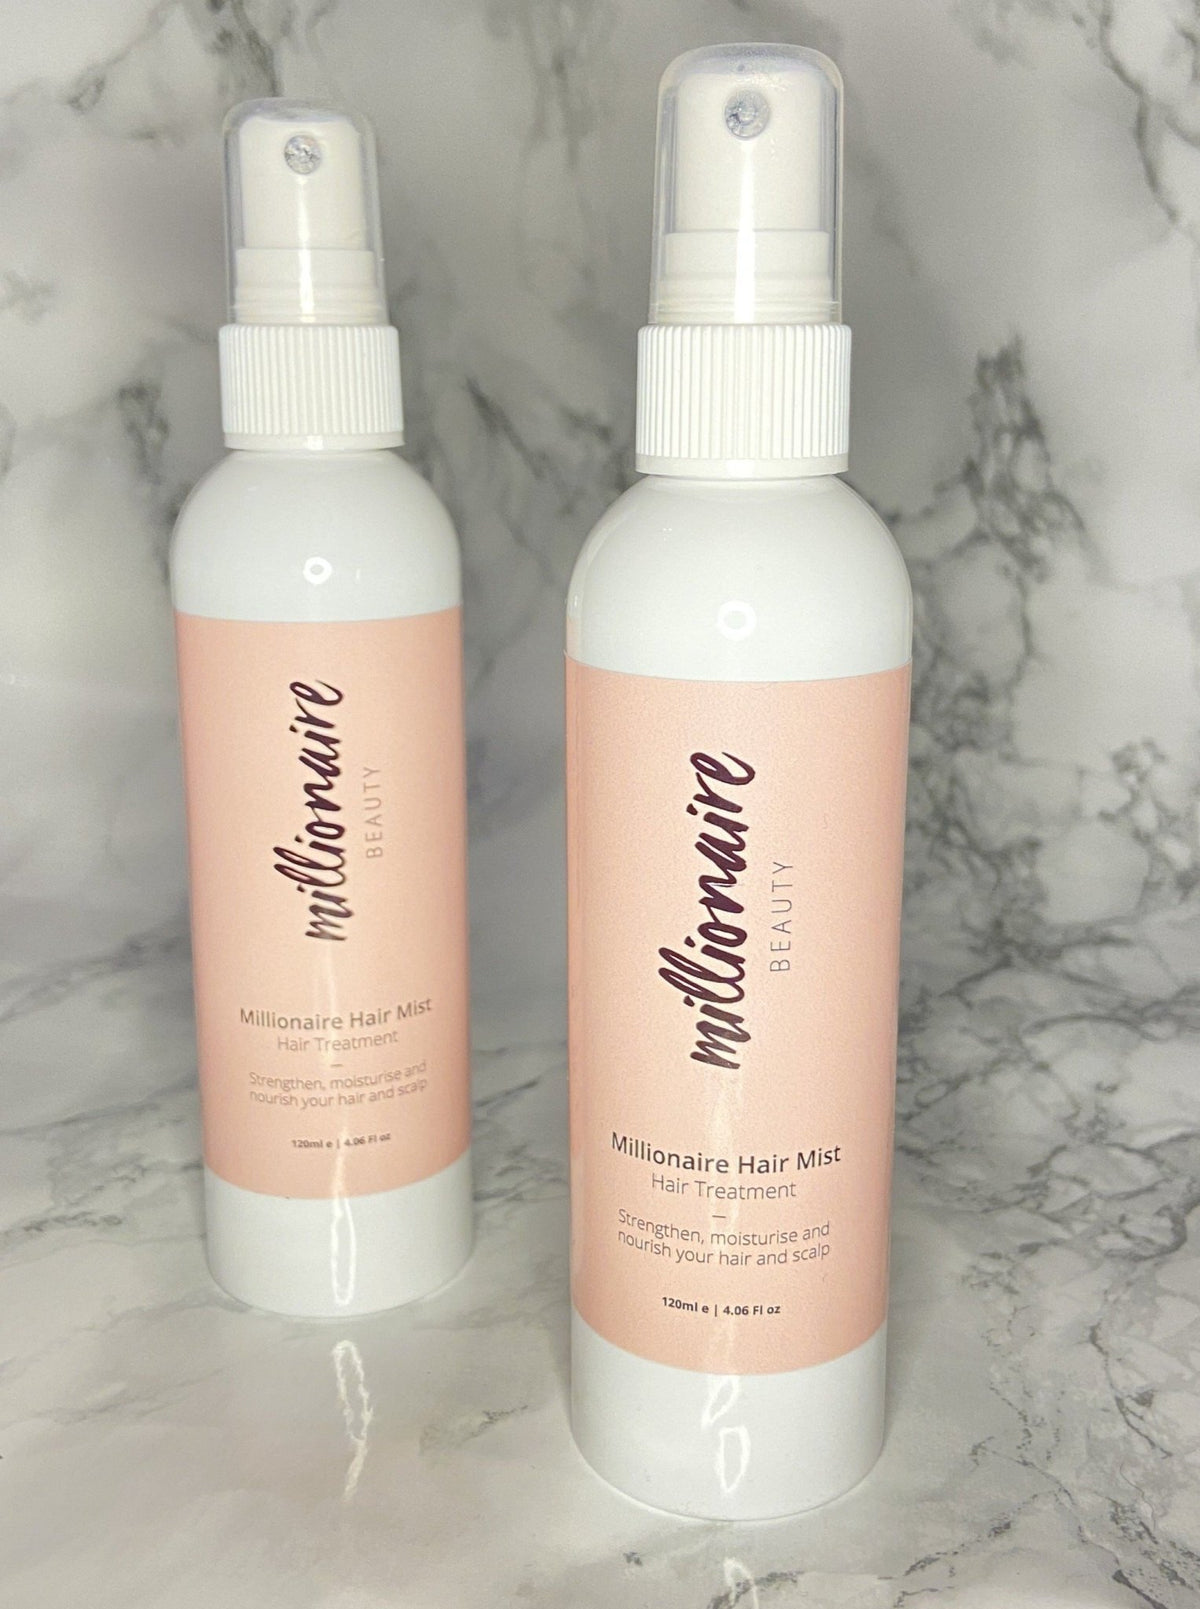 Millionaire Hair Mist - nourishes and strengthens your hair and scalp, Skincare, Millionaire Beauty, Skincare routine, paulas choice, cult beauty, skincare bundle, face serums, night time skincare routine, Morning skincare routine